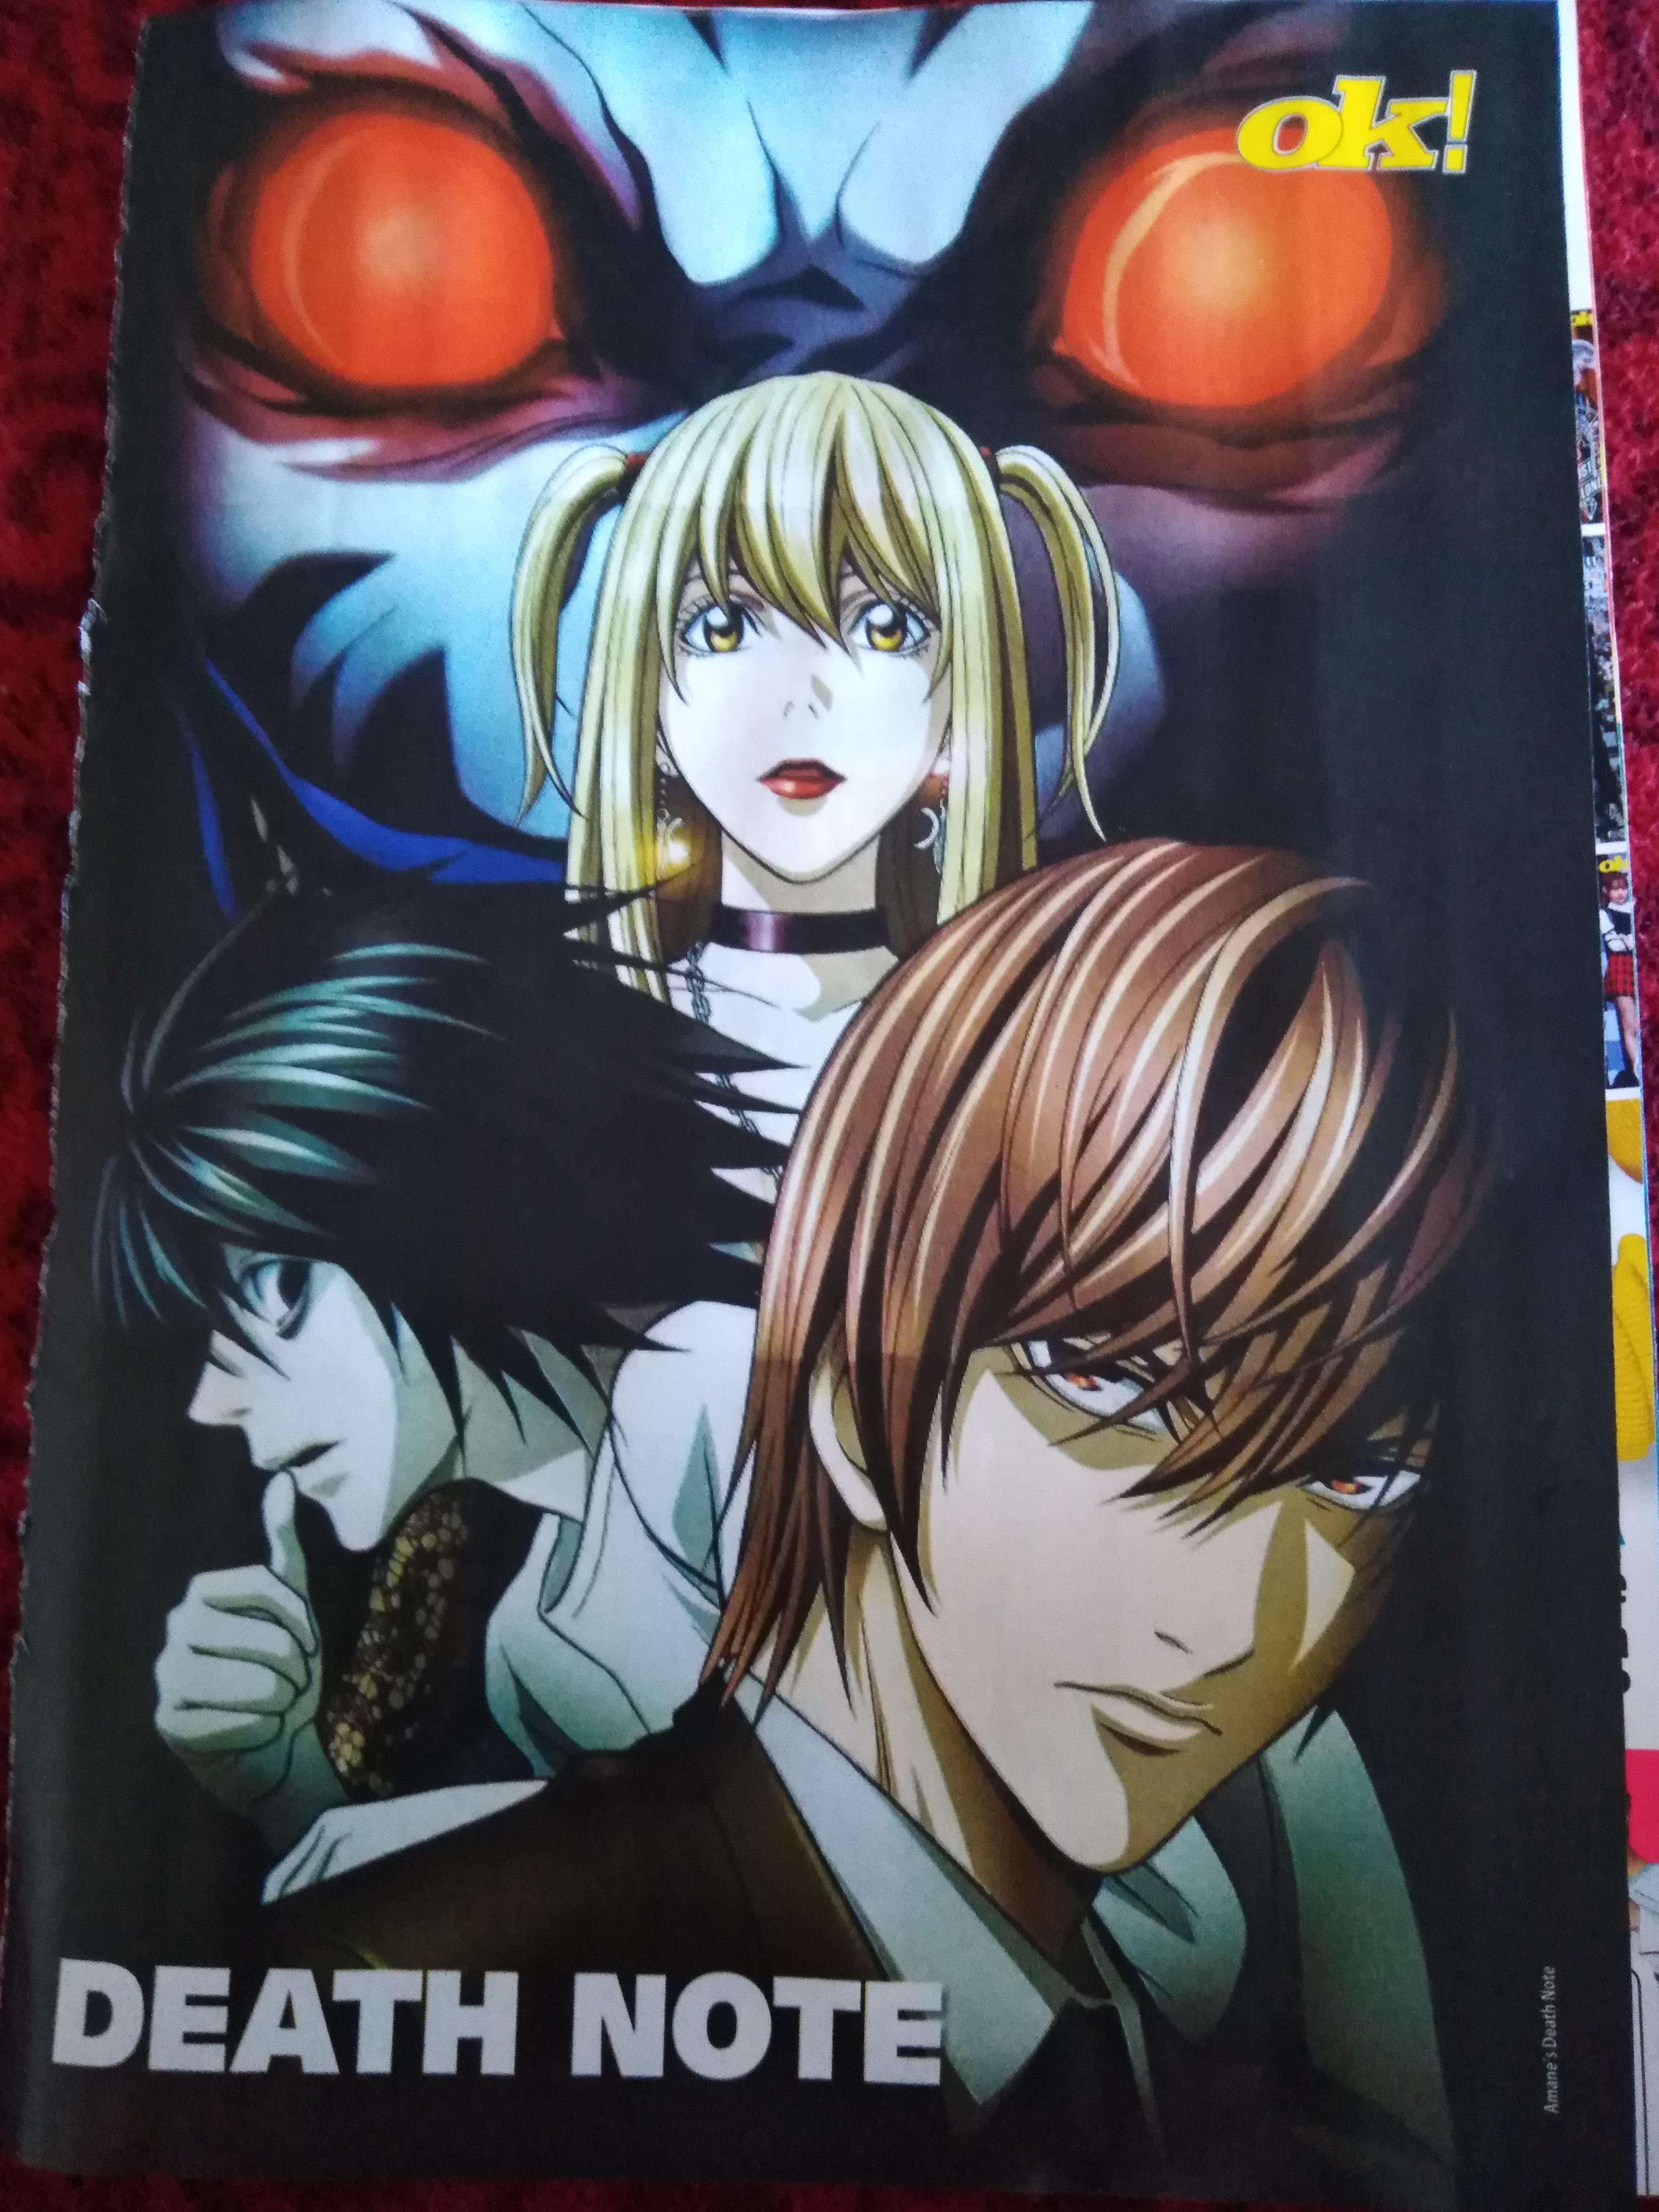 death note poster from croatian teen